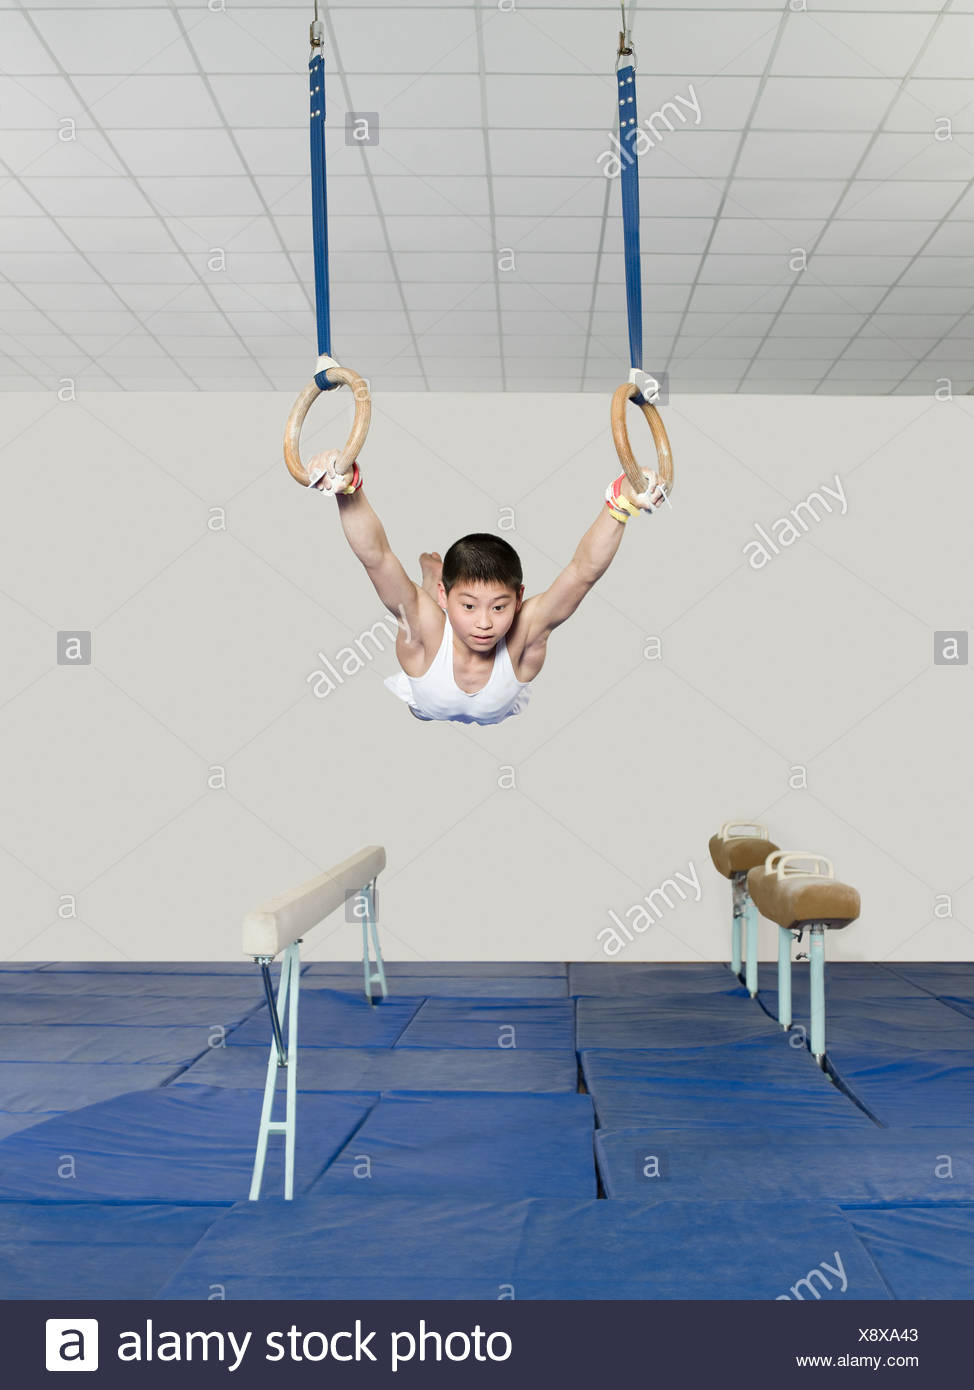 fucking-sailor-very-young-naked-teen-boys-in-gymnastics-rapid-nakes